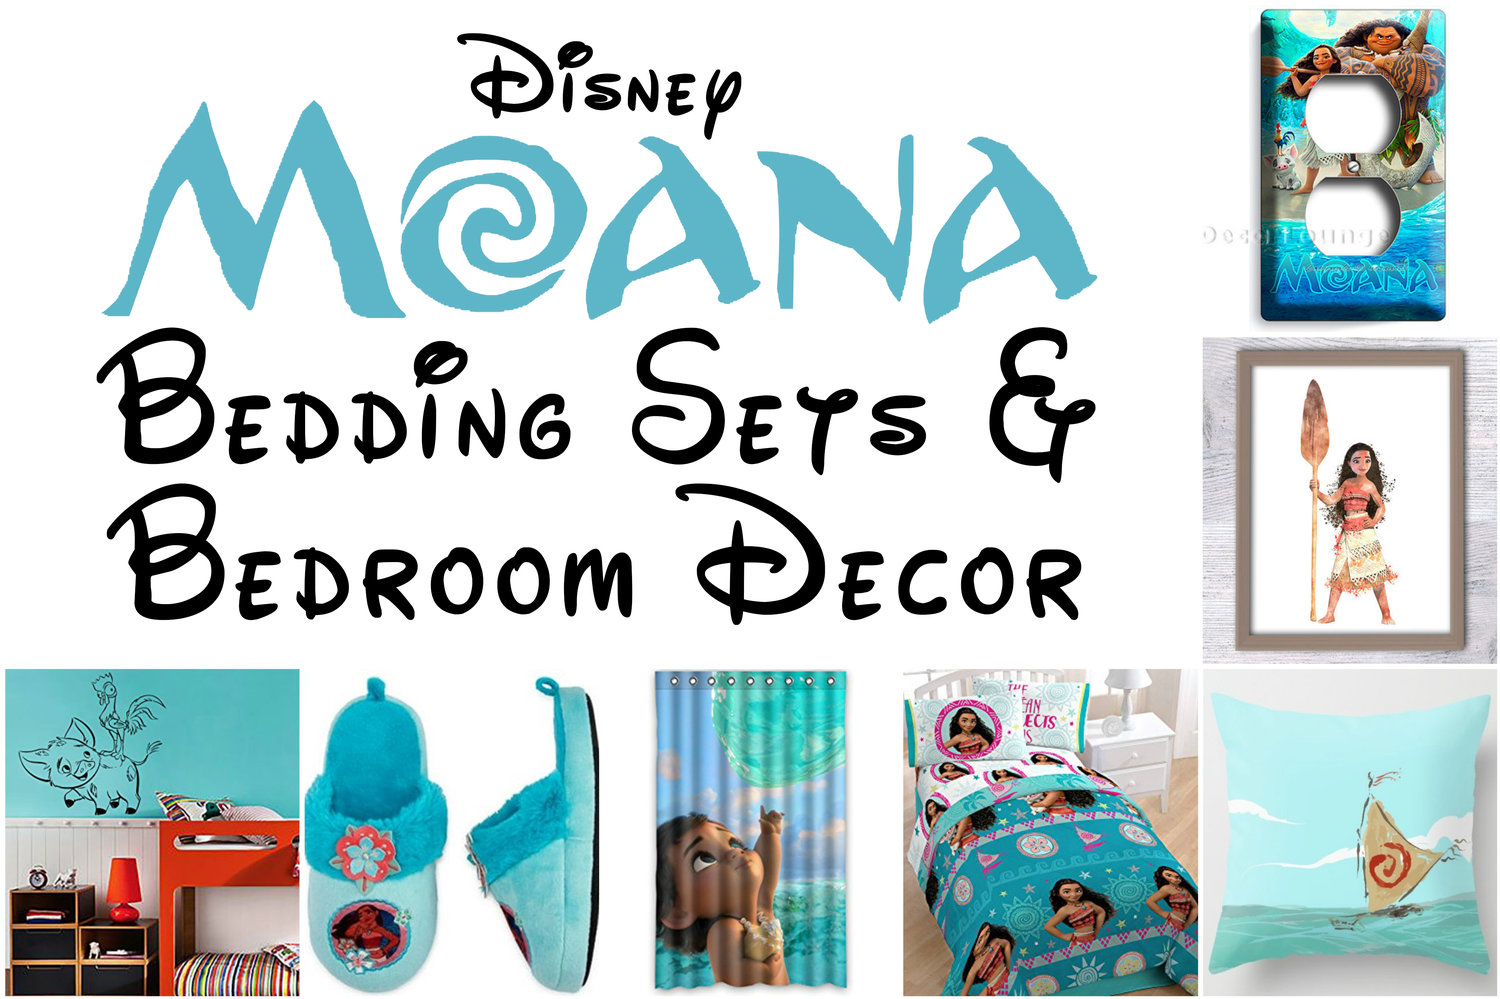 3cdc09283e7e Beautiful Disney Moana Bedroom Decor for Sweet Princess Dreams ...